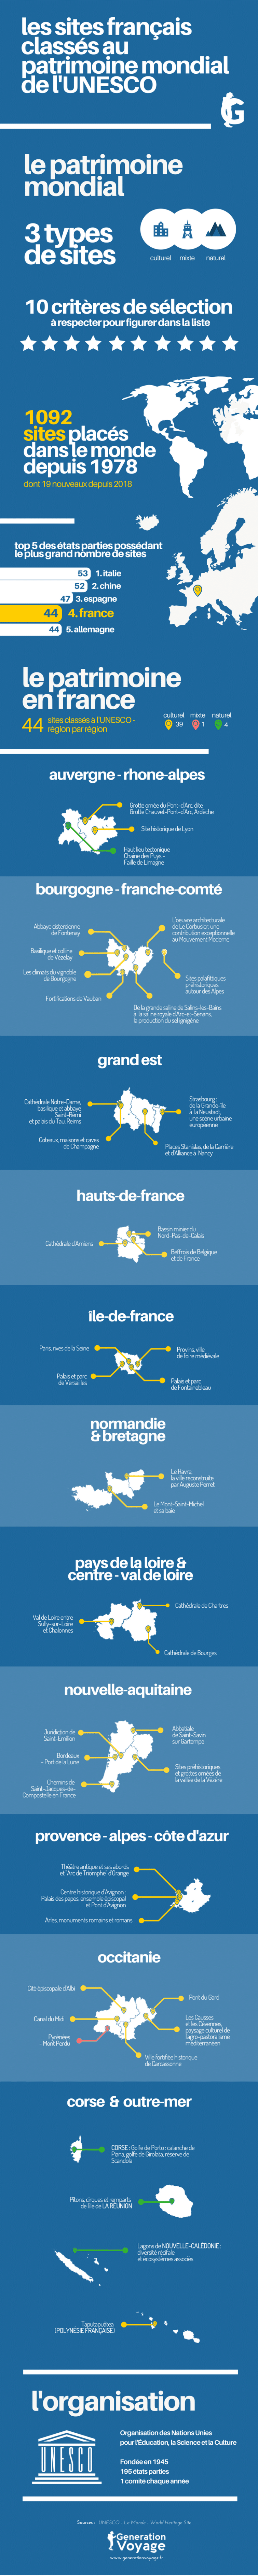 Infographie Sites UNESCO France 2018